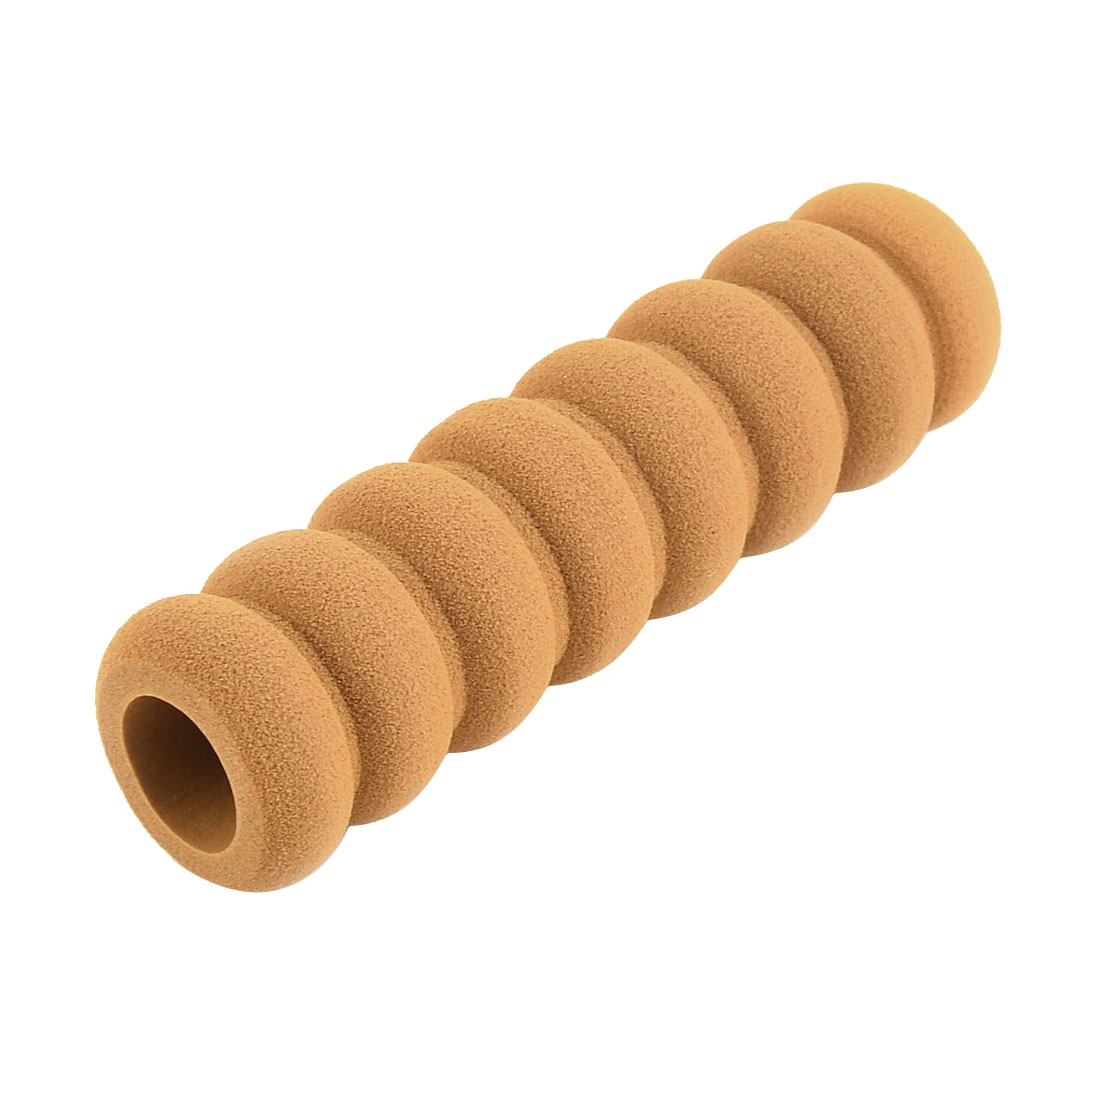 Home Door Handle Knob Protector Safety Anti-satic Cover Wood Color